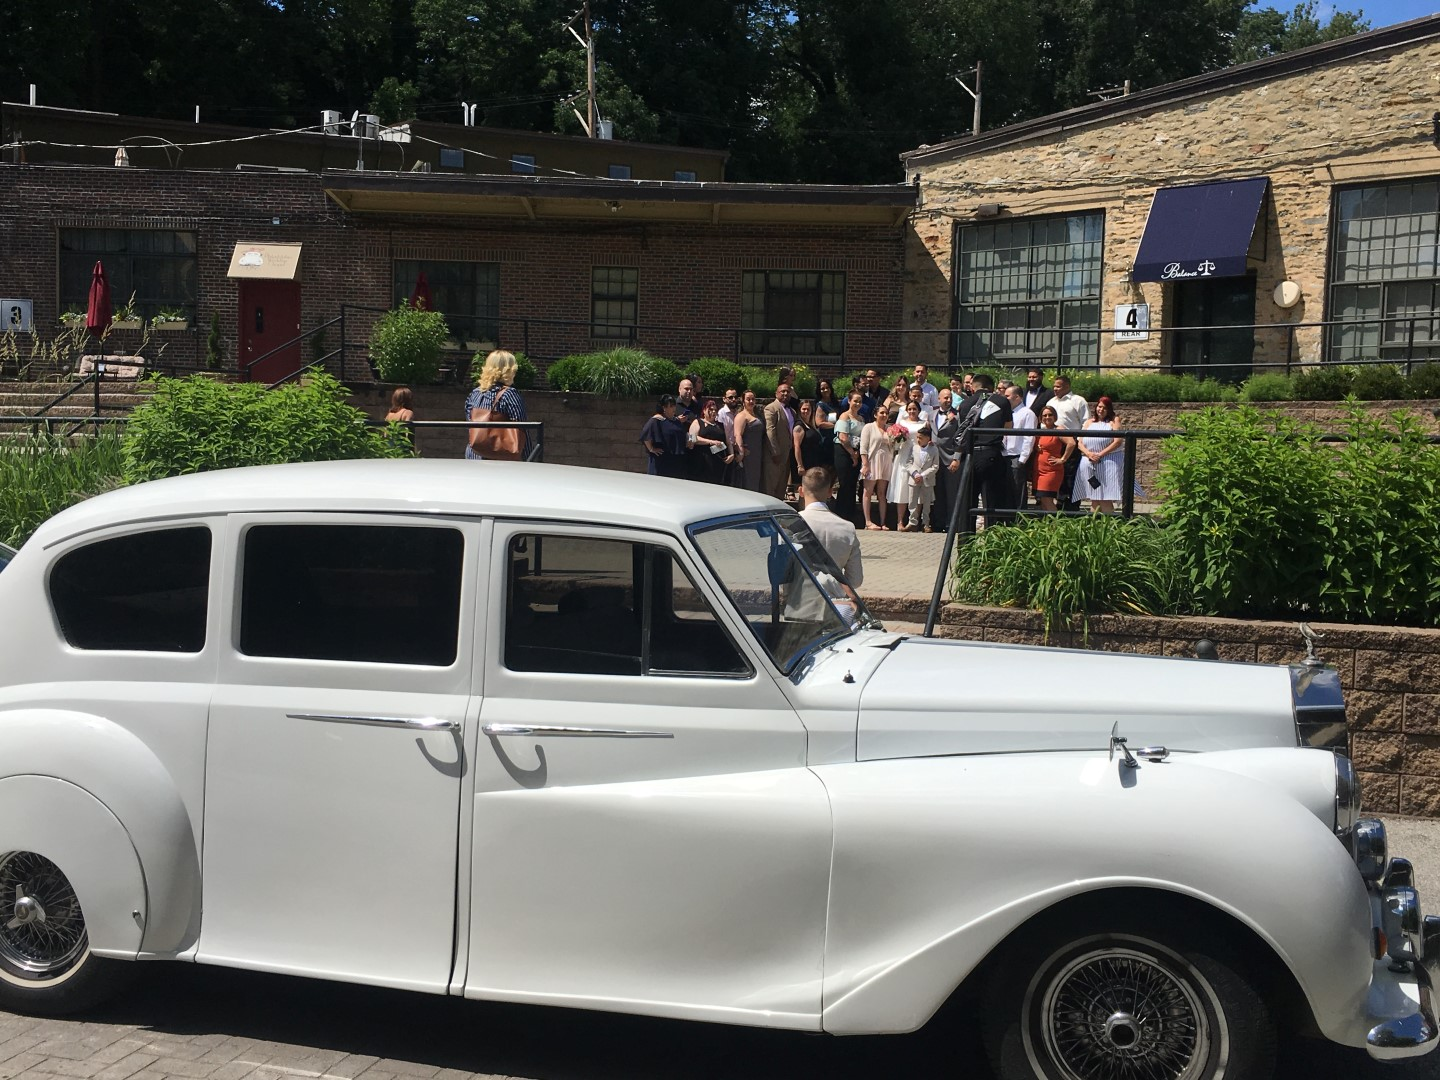 vintage limo for wedding in pennsylvania jpg 422x640